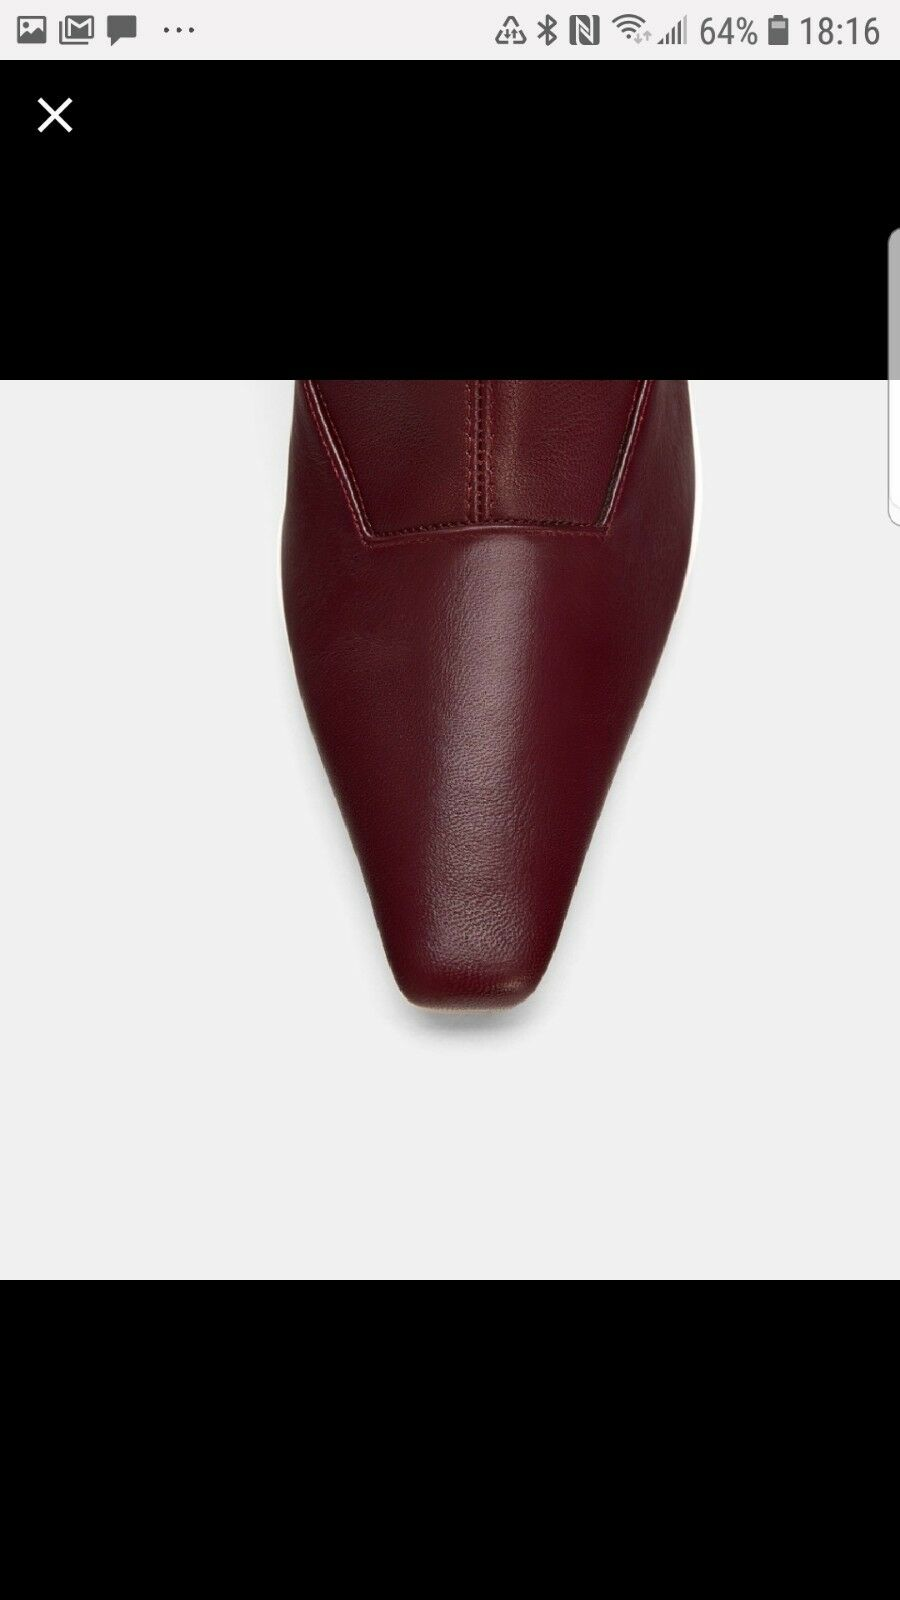 Zara Heel Leather Leather Leather Ankle Boots e858d2